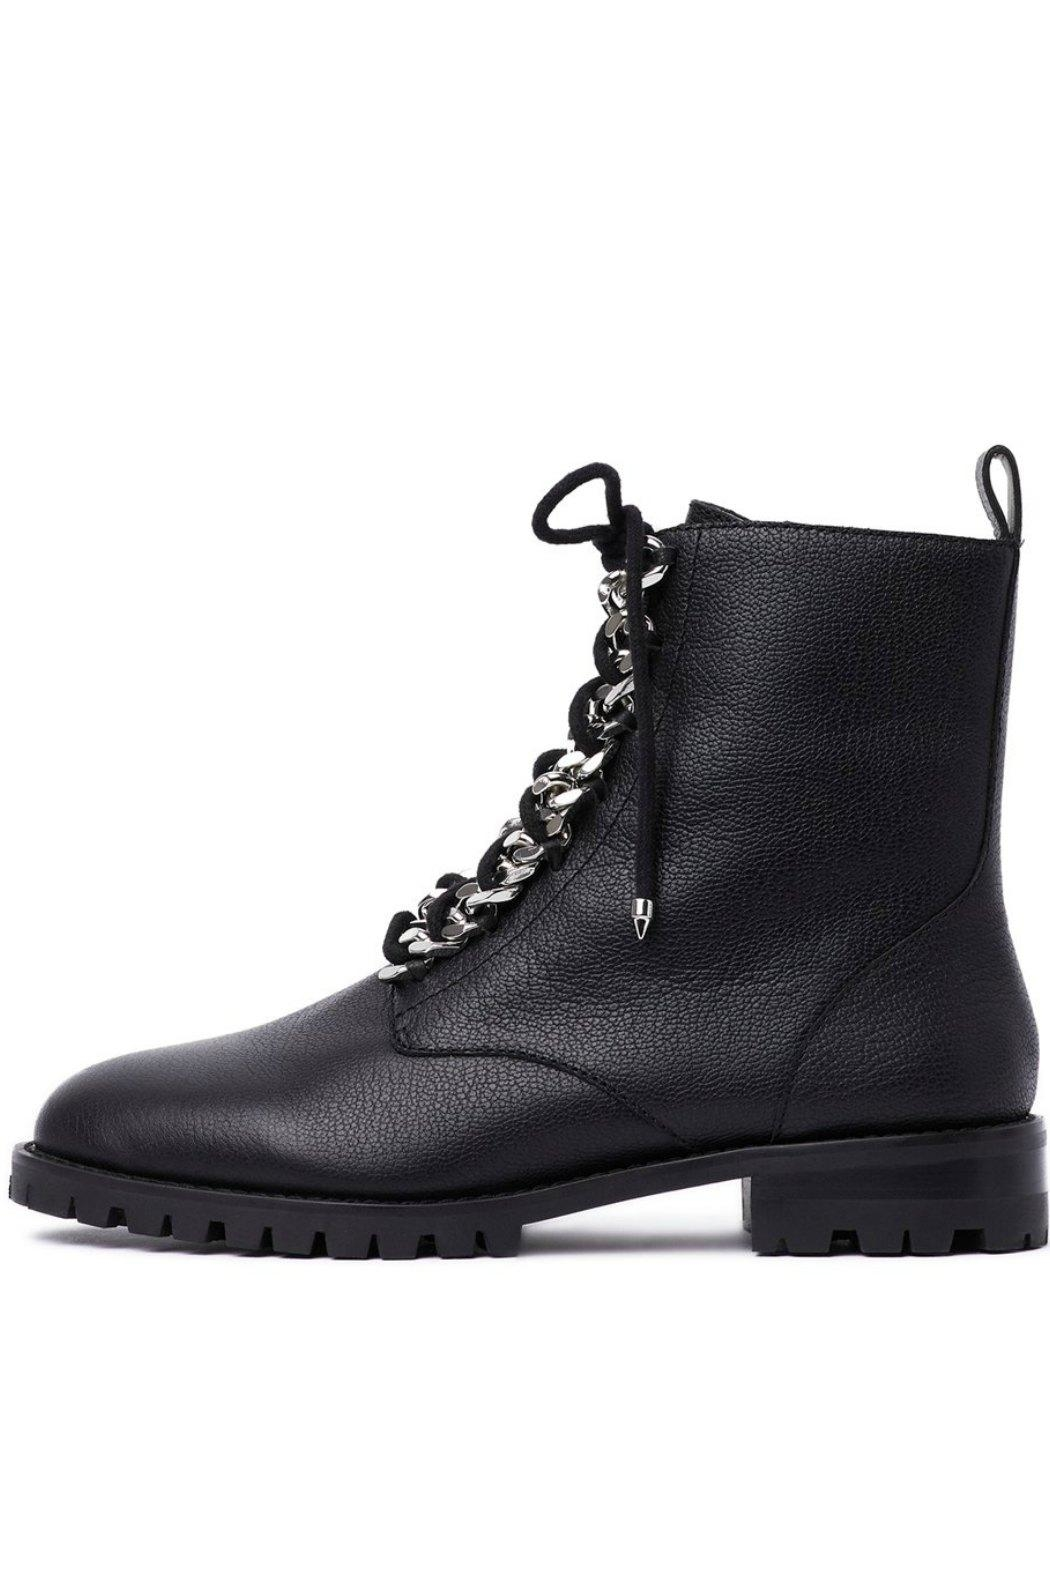 Joie Janyi Chain Moto-Boot - Front Cropped Image